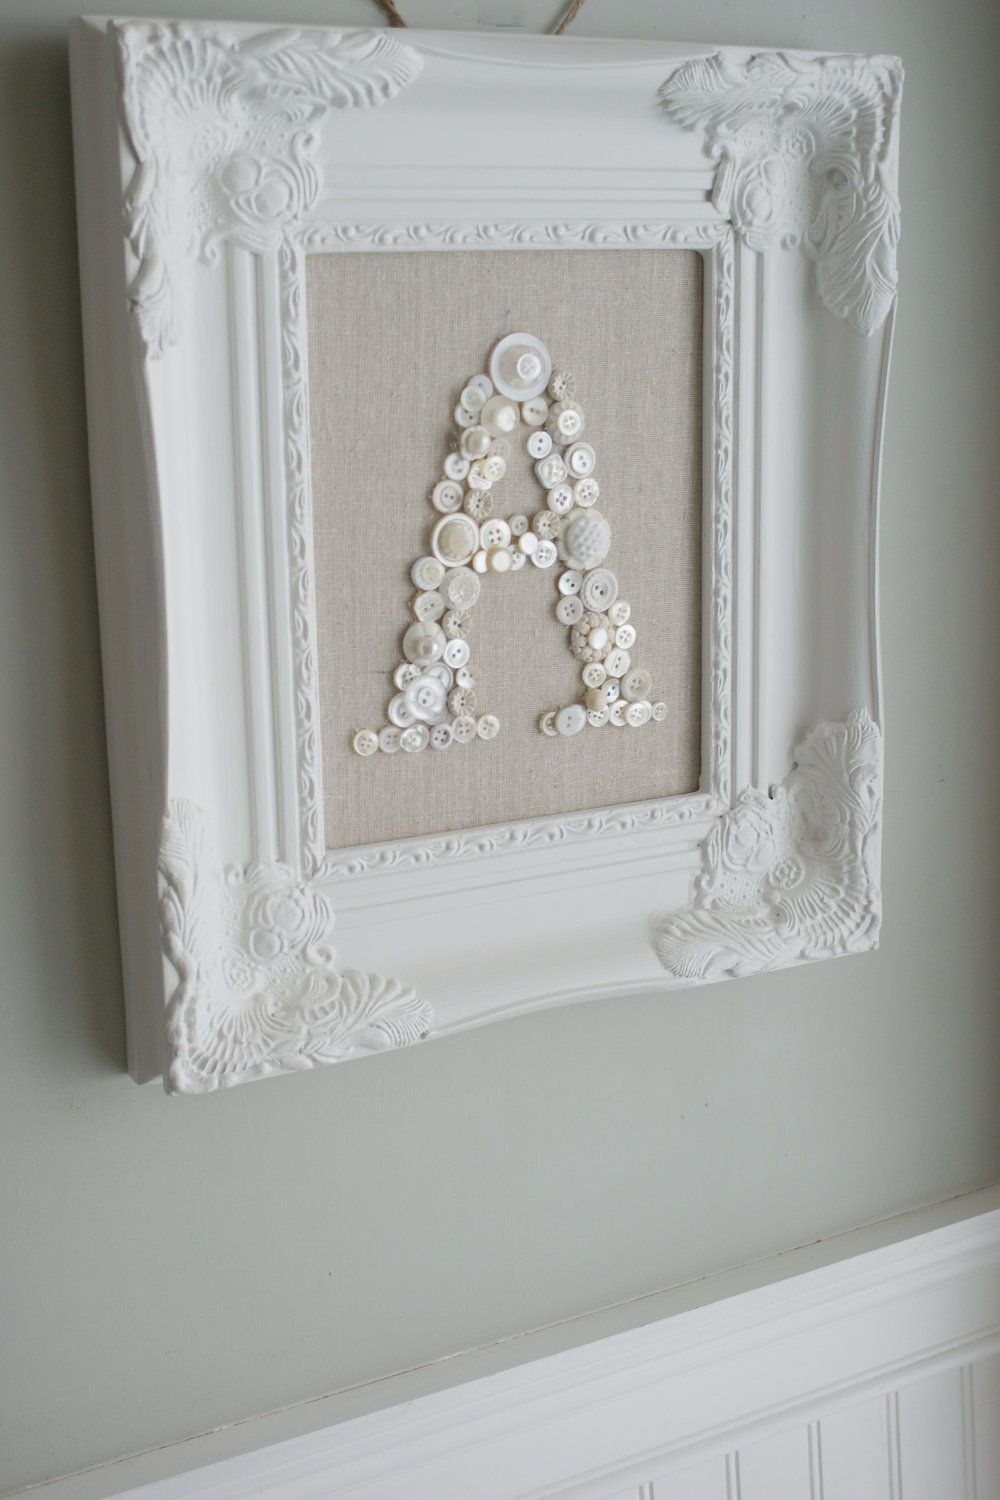 Personalized Monogrammed Button Display-White Ornate Picture Frame ...